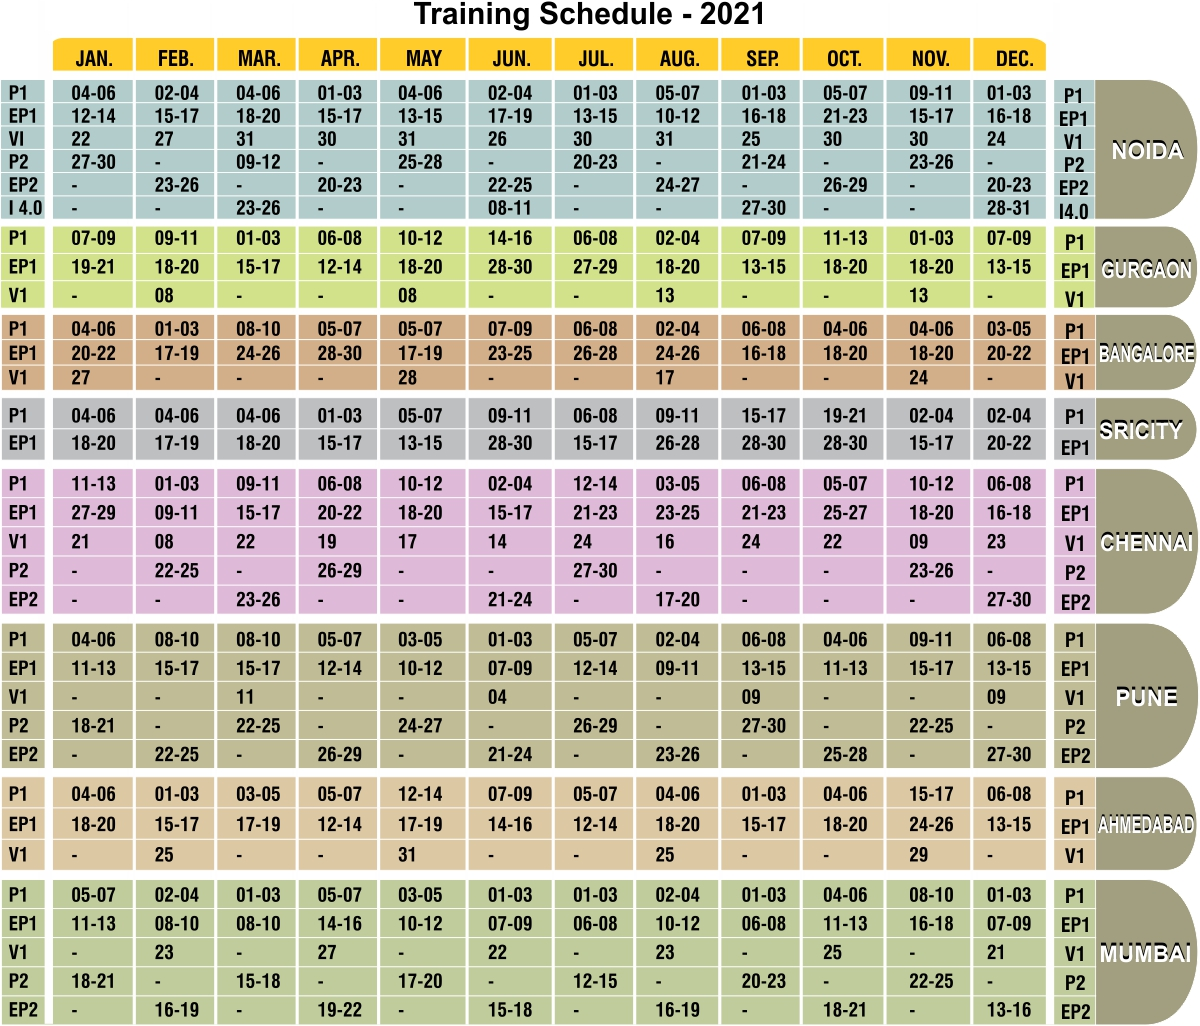 Training Schedule 2021